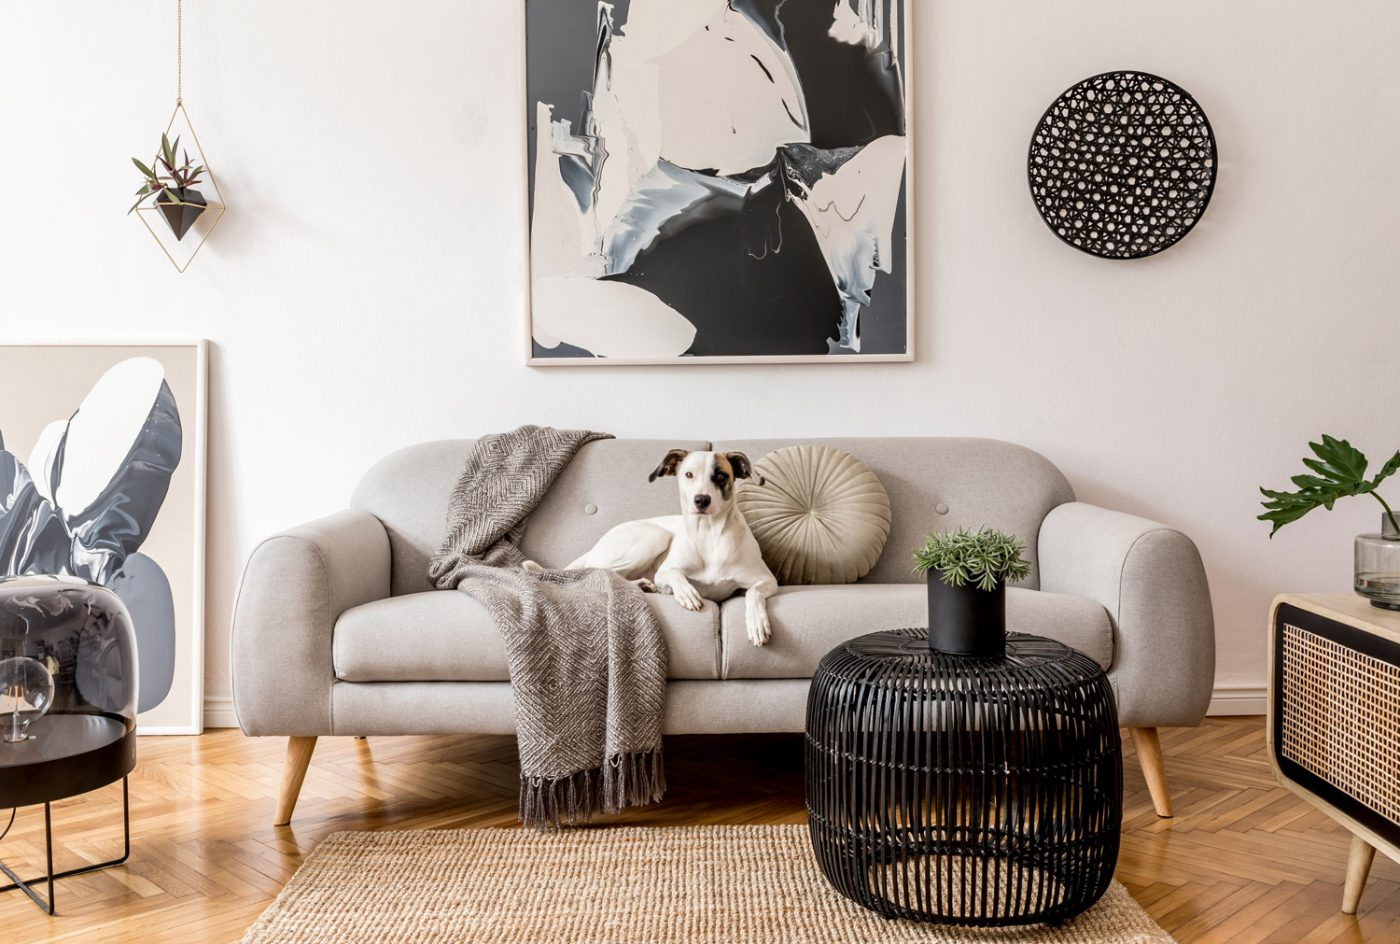 A picture of a dog on a couch; Oregon real estate